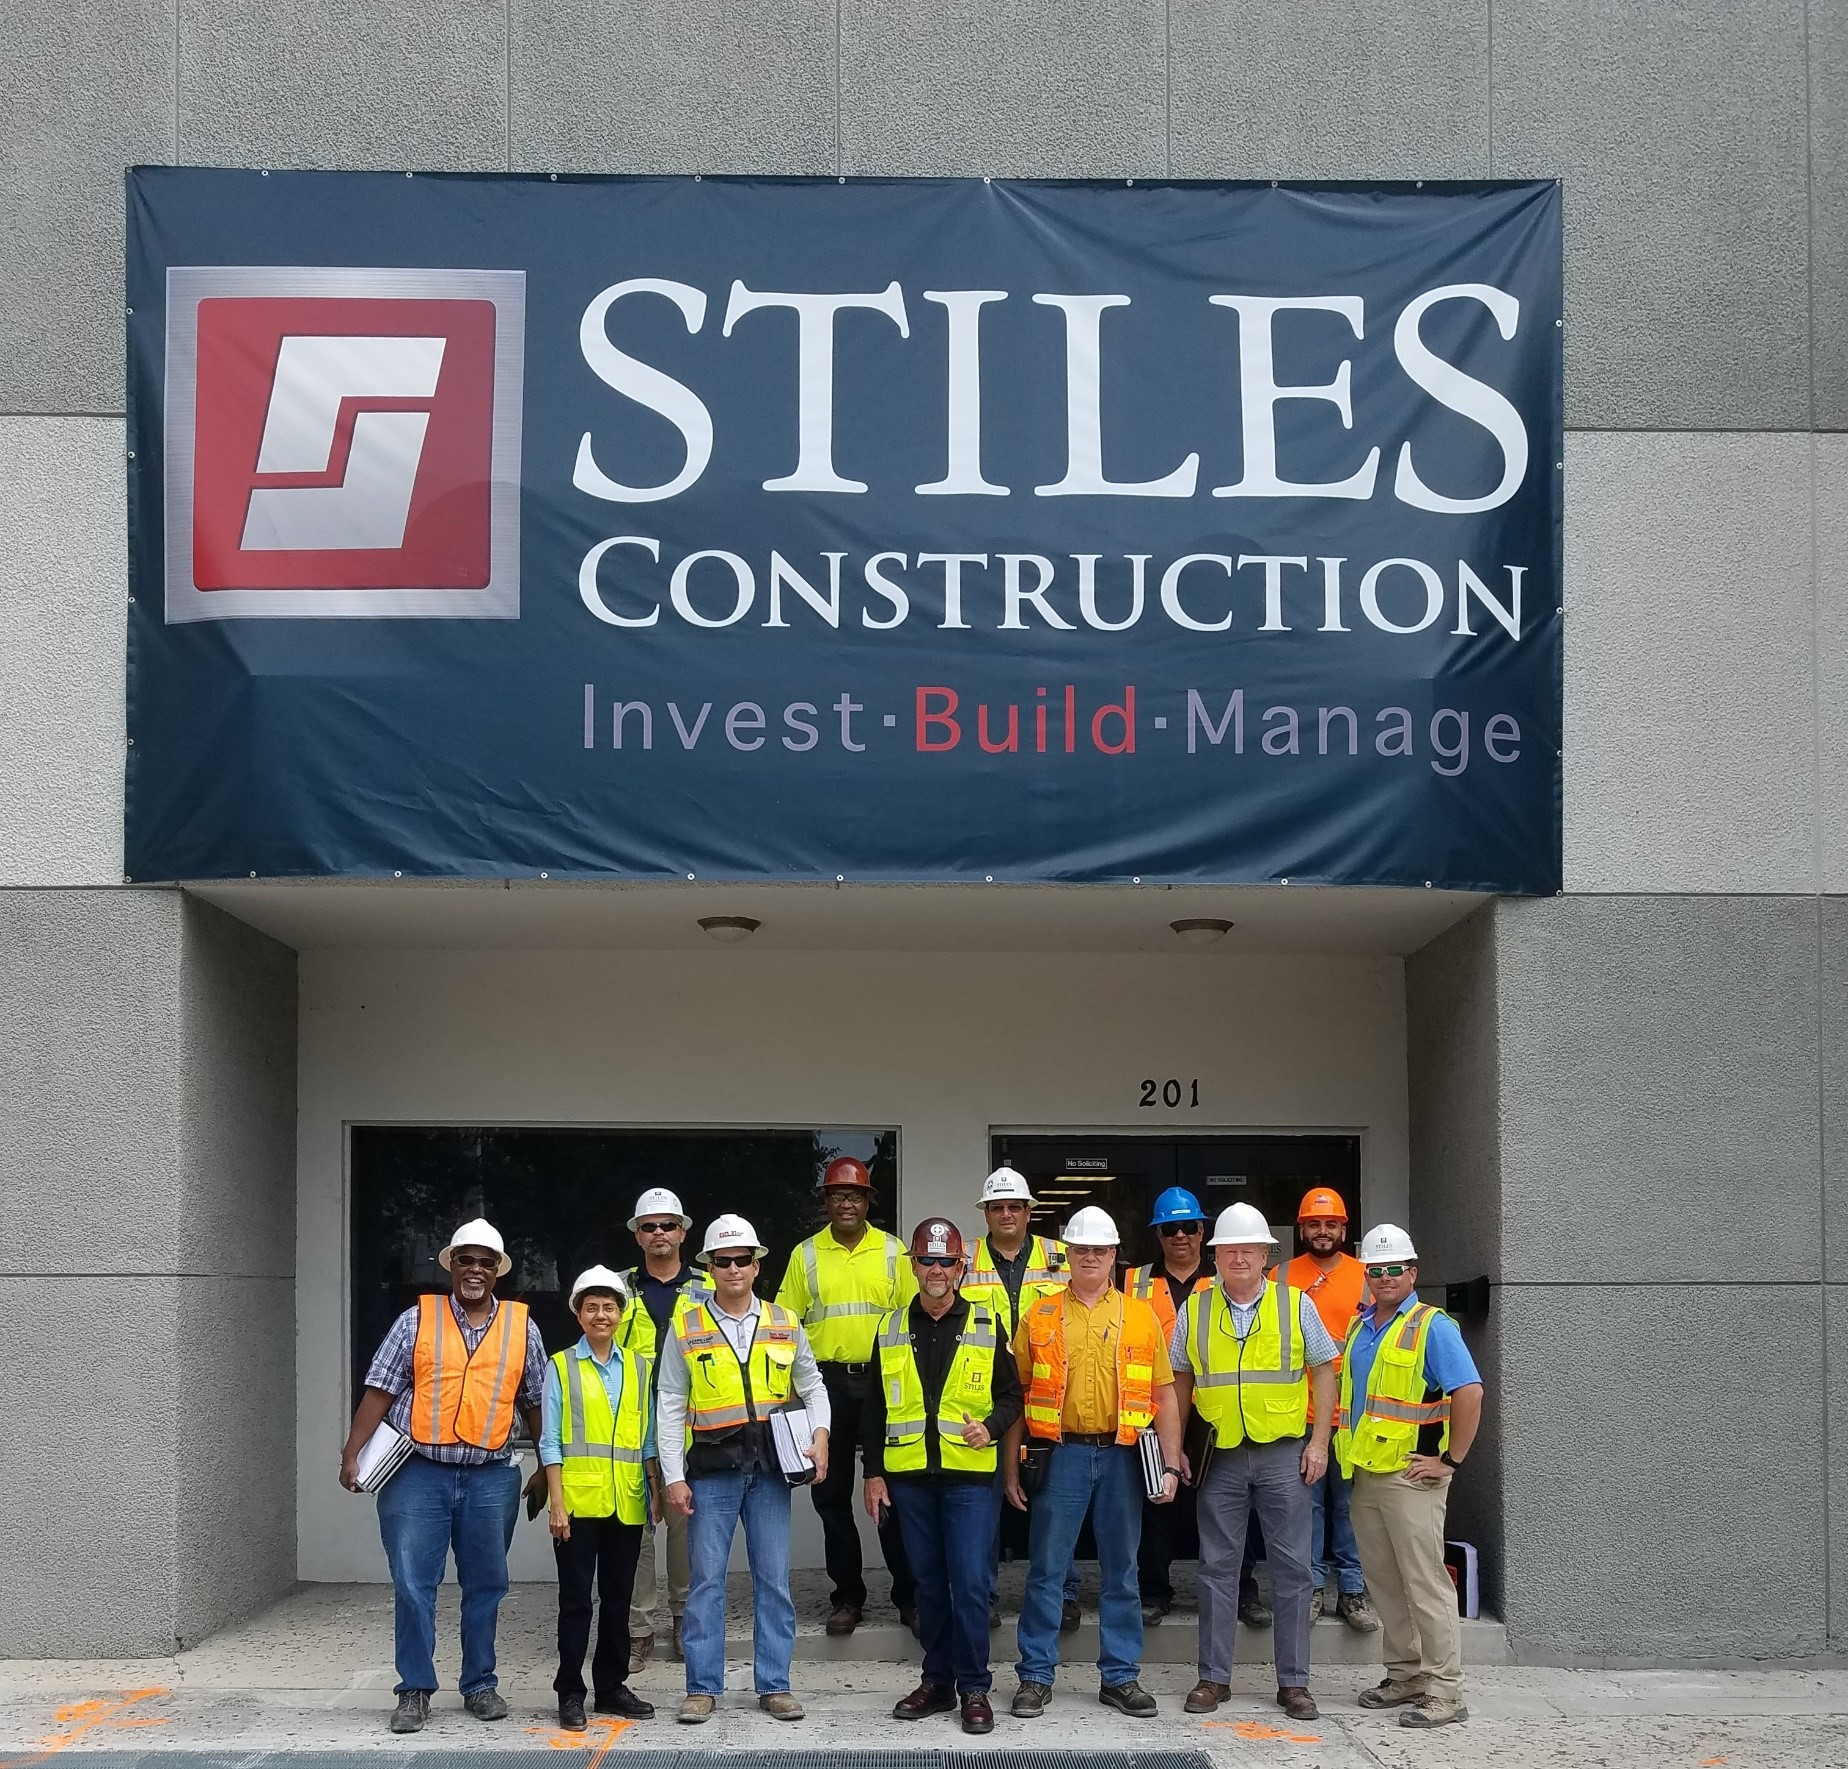 USF SafetyFlorida Management Staff and Stiles Construction Team